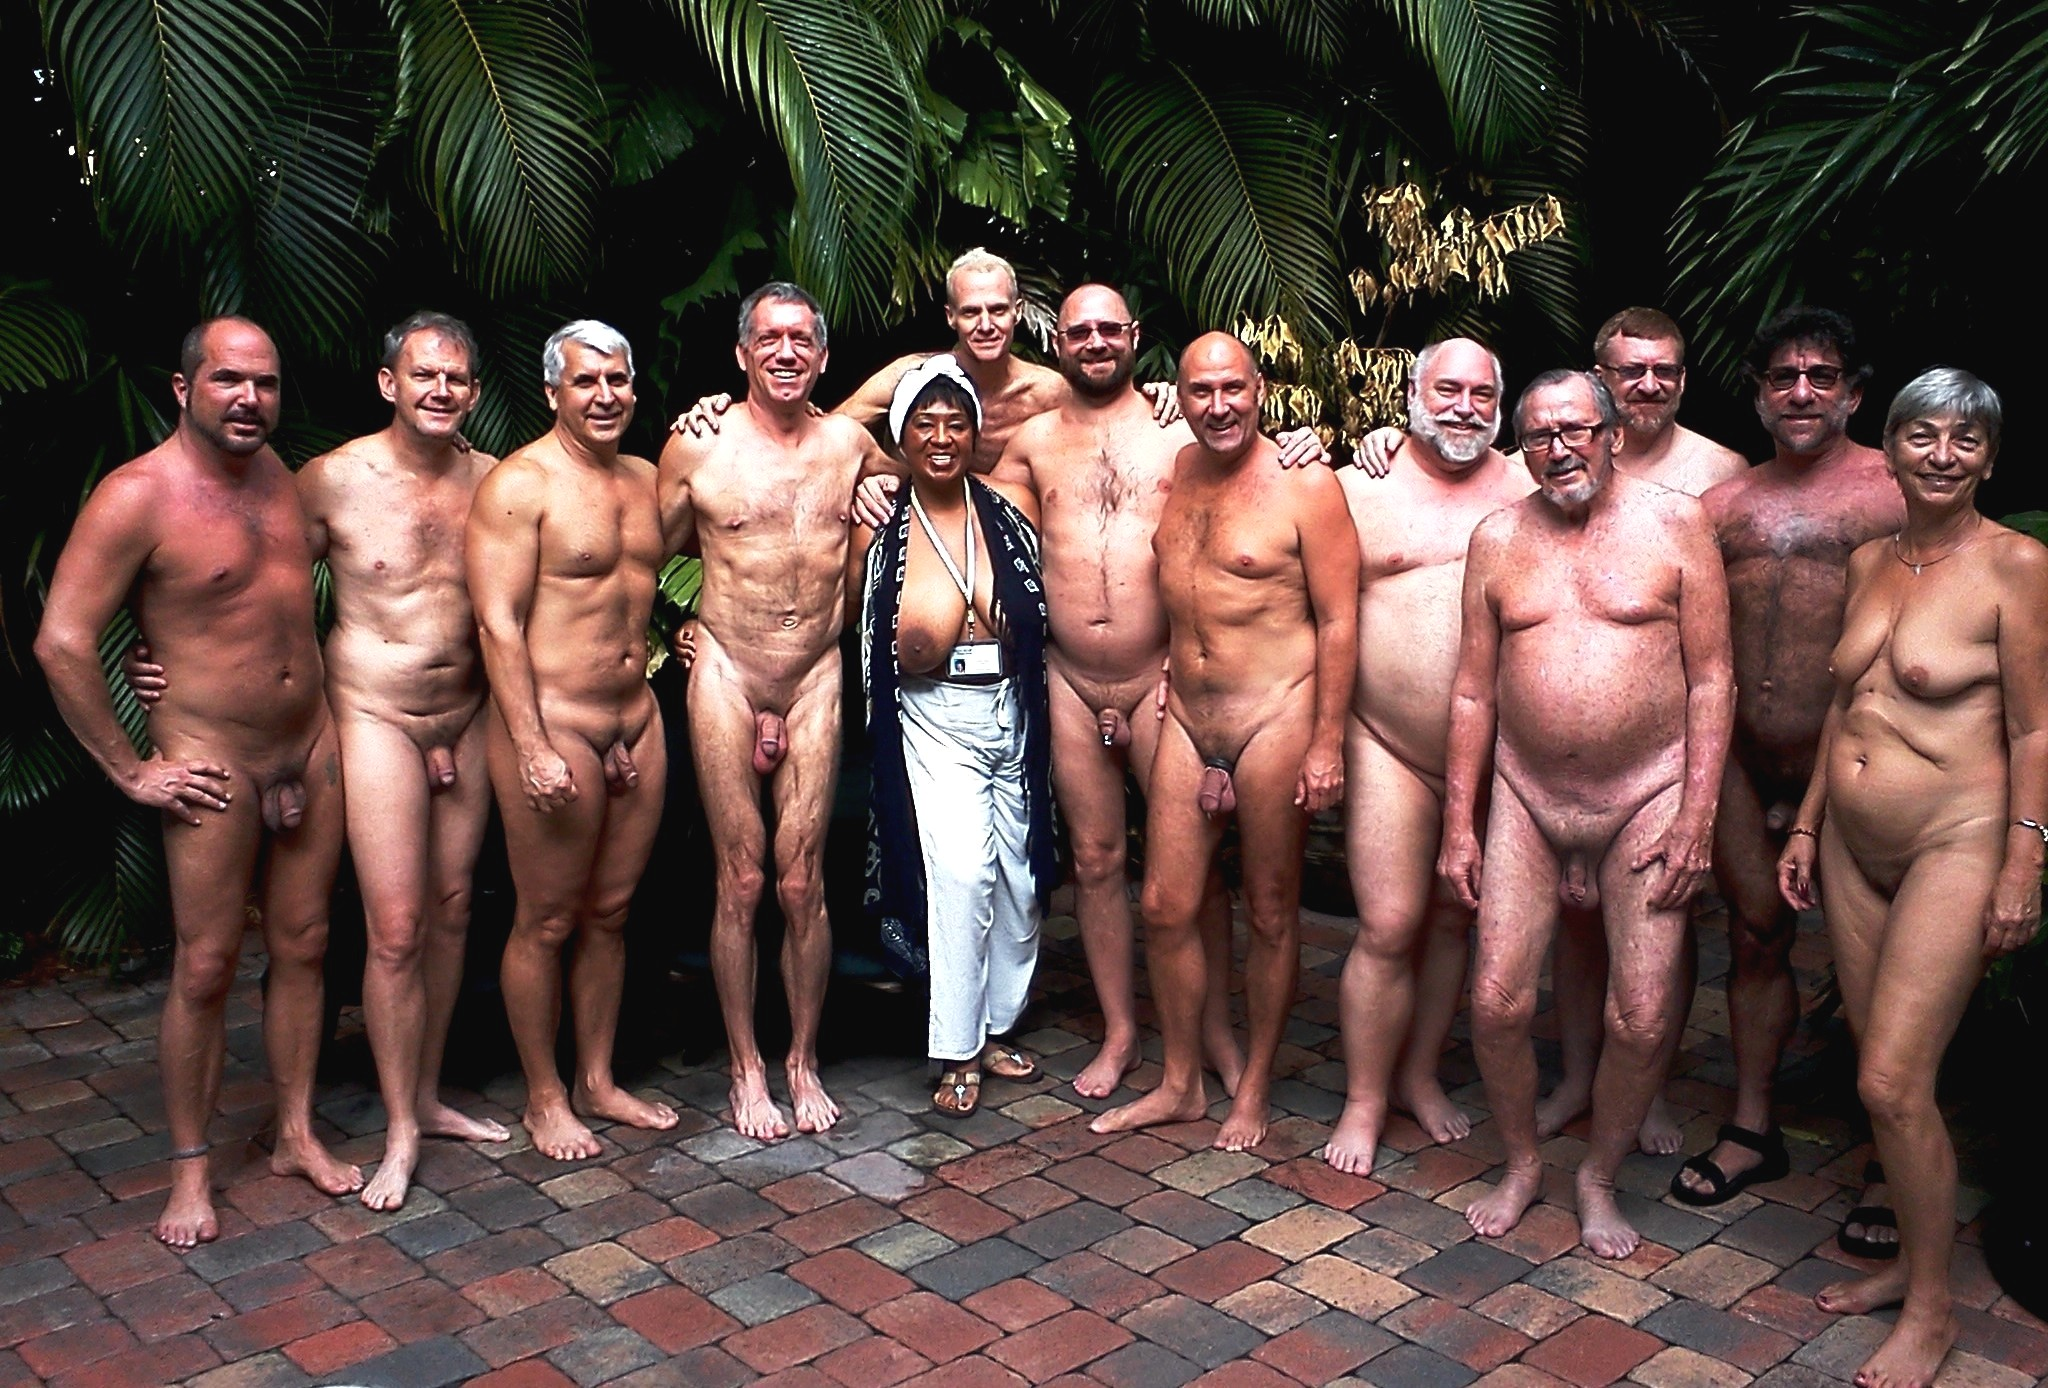 nudist photos mature mature naturist family